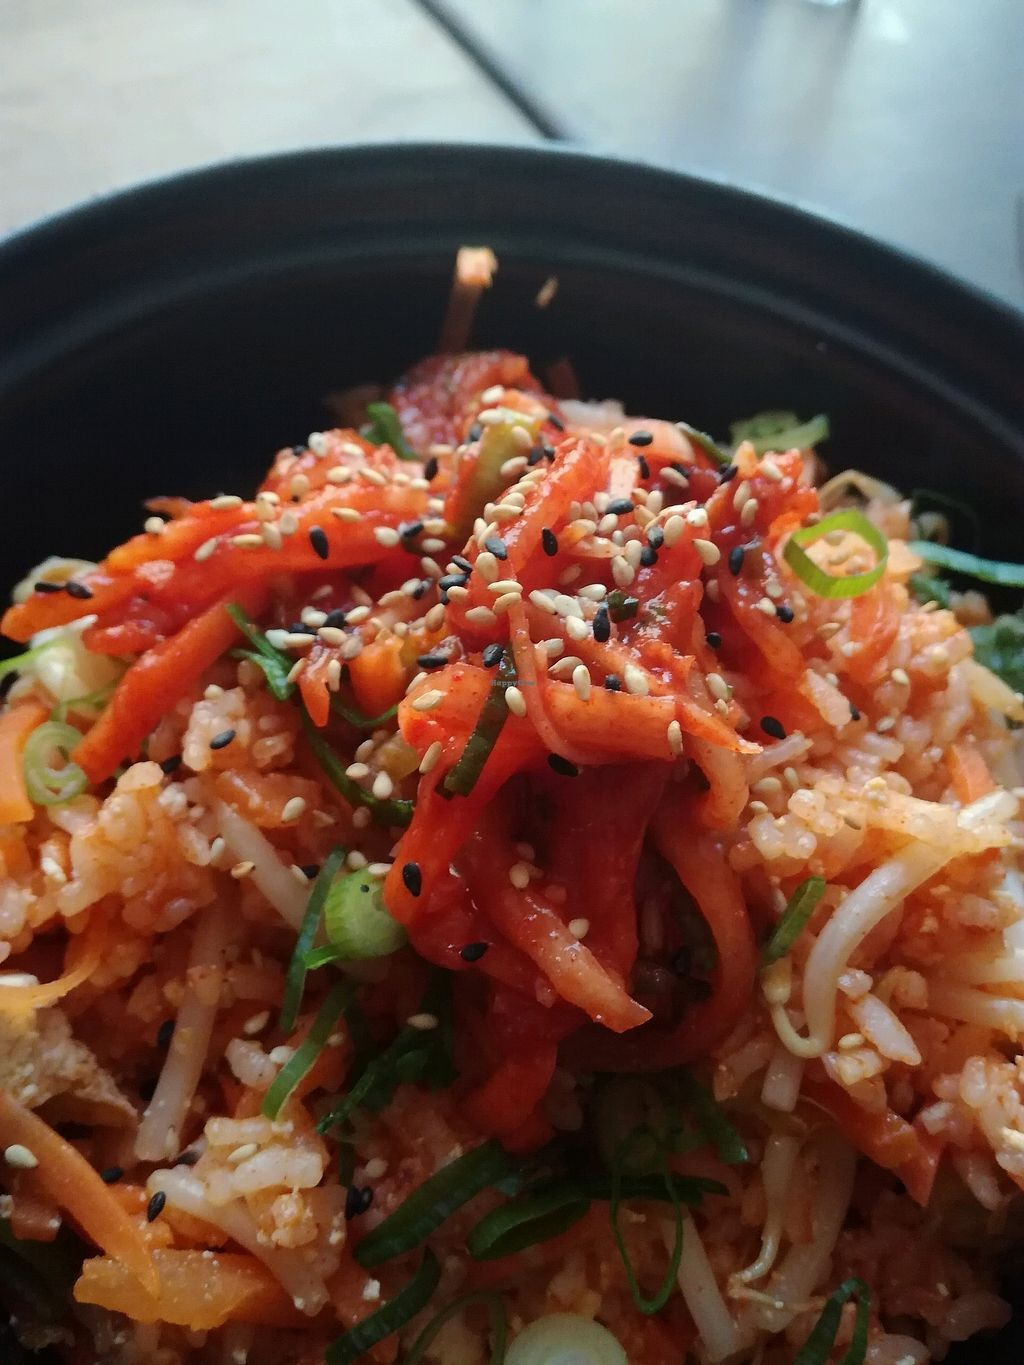 """Photo of Monsun Noodlebar  by <a href=""""/members/profile/EvaKa"""">EvaKa</a> <br/>Vegan Fried Rice with Kimchi <br/> March 25, 2018  - <a href='/contact/abuse/image/74725/376010'>Report</a>"""